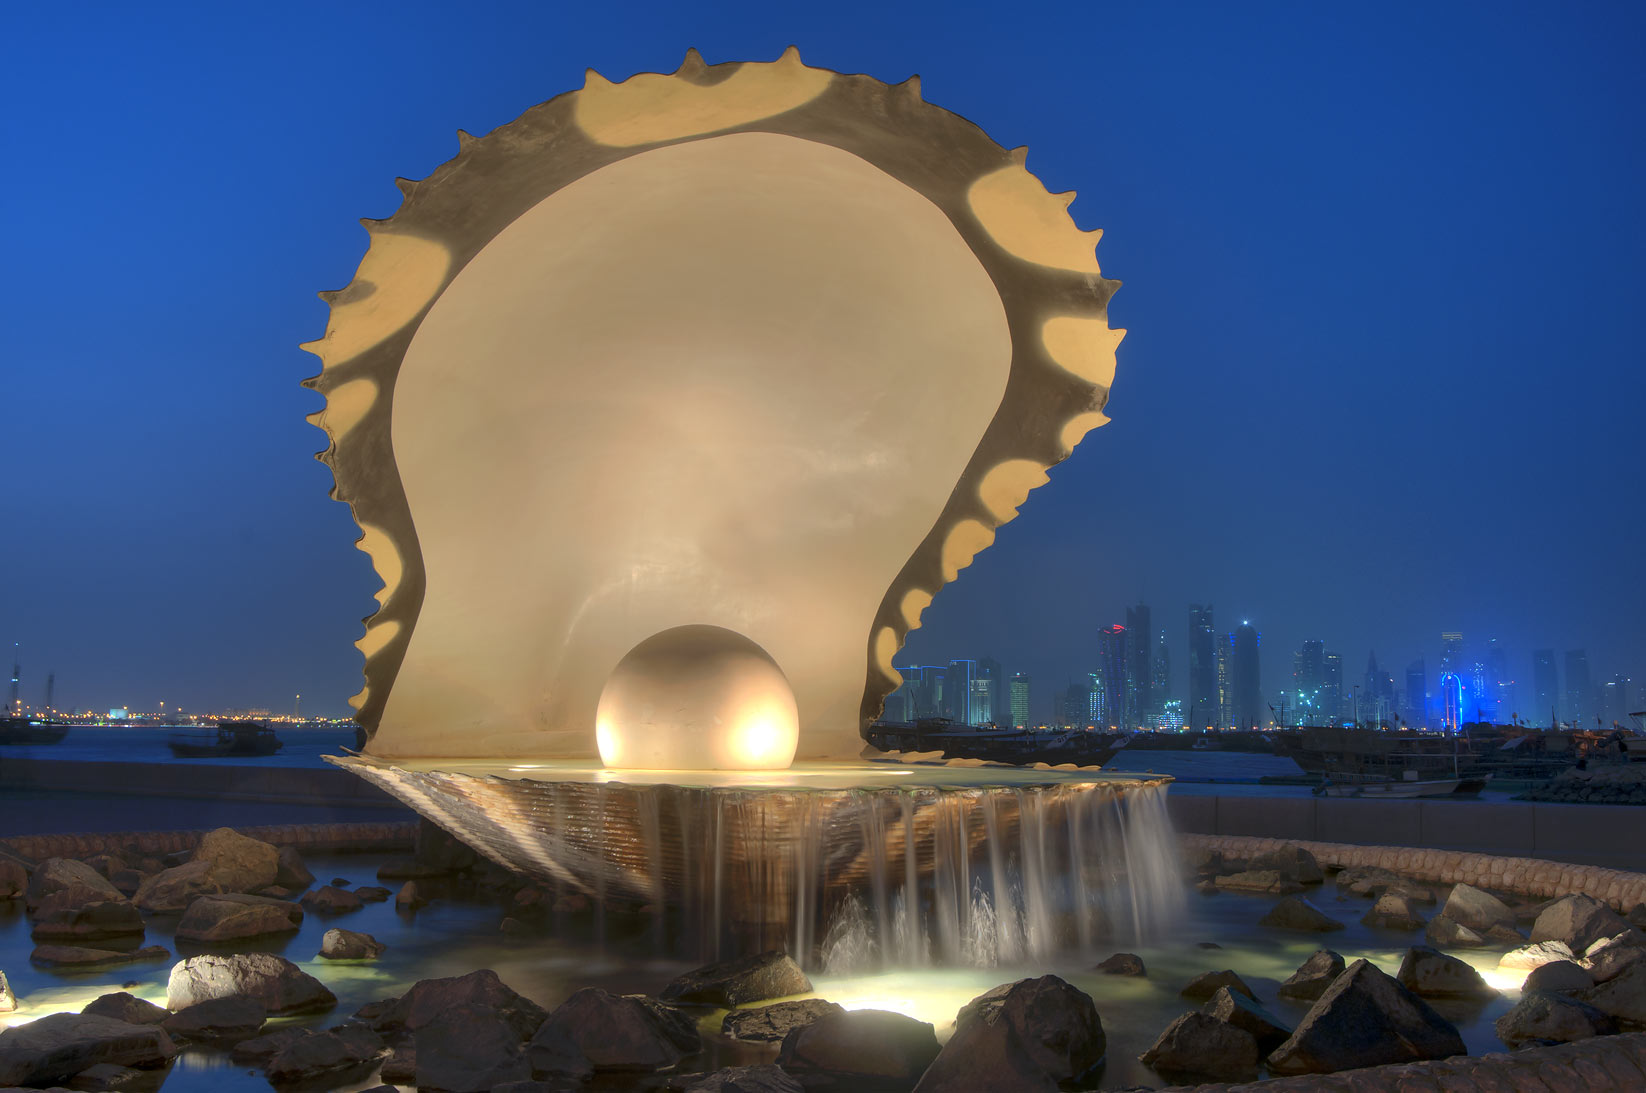 Oyster and Pearl Fountain on Corniche. Doha, Qatar